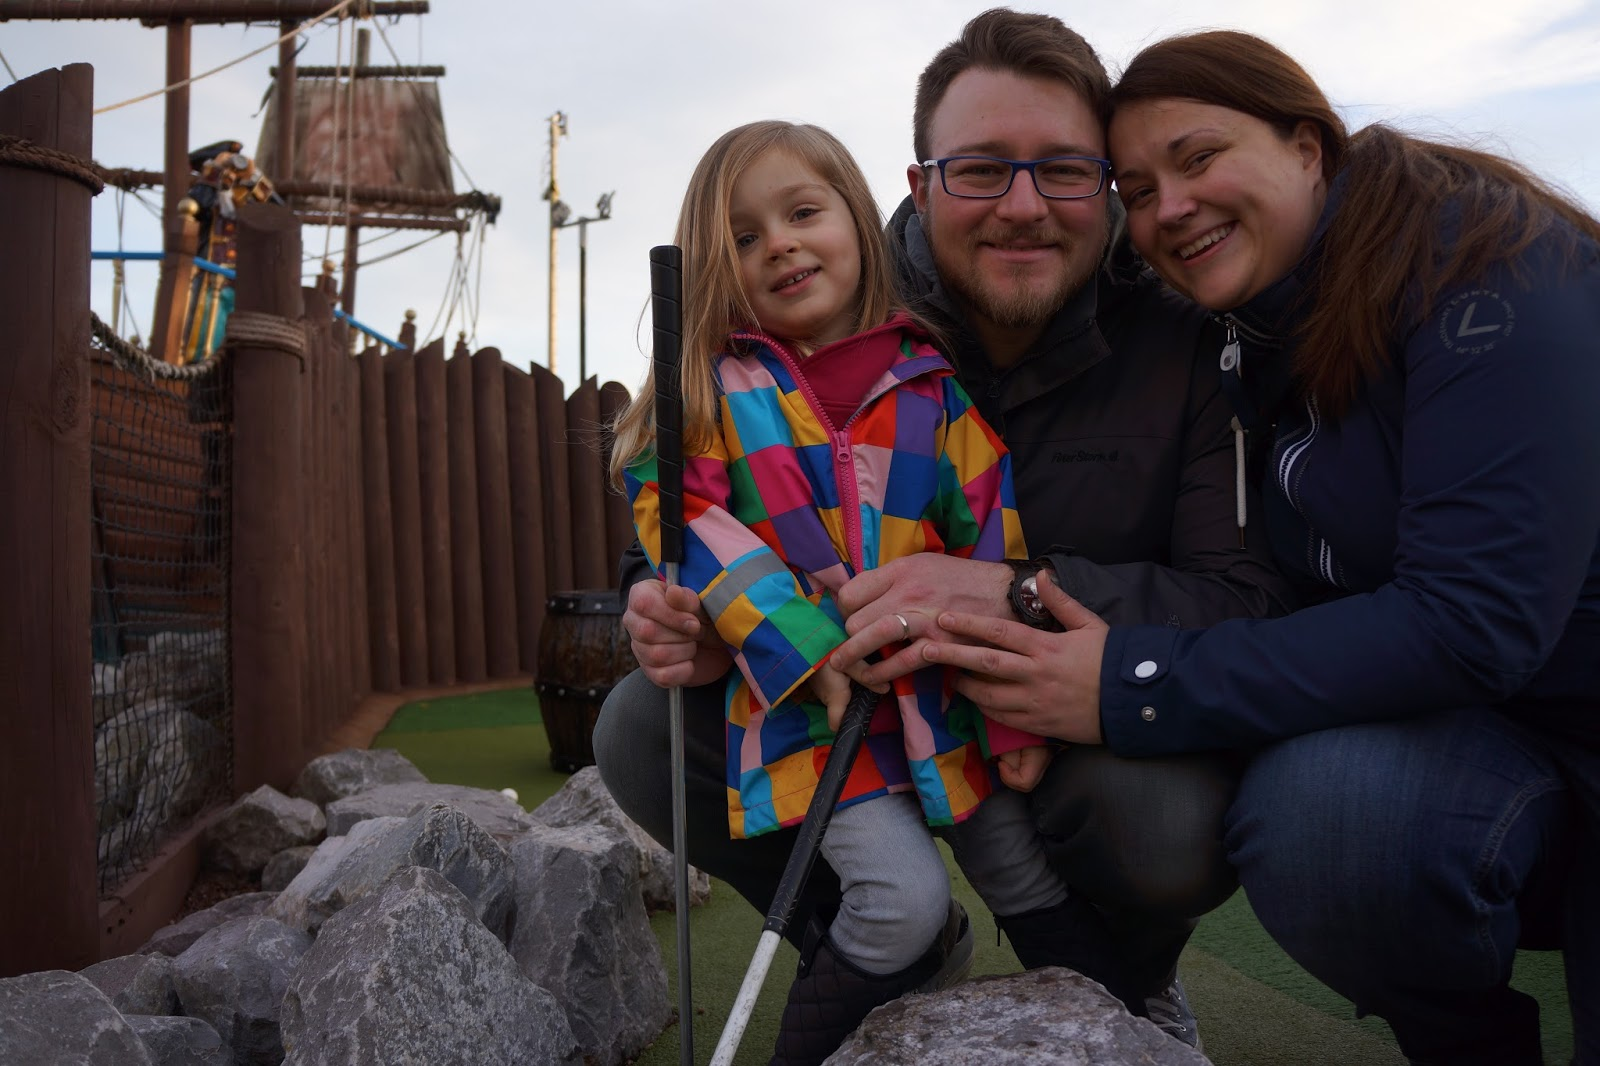 family picture at butlins minehead mini golf